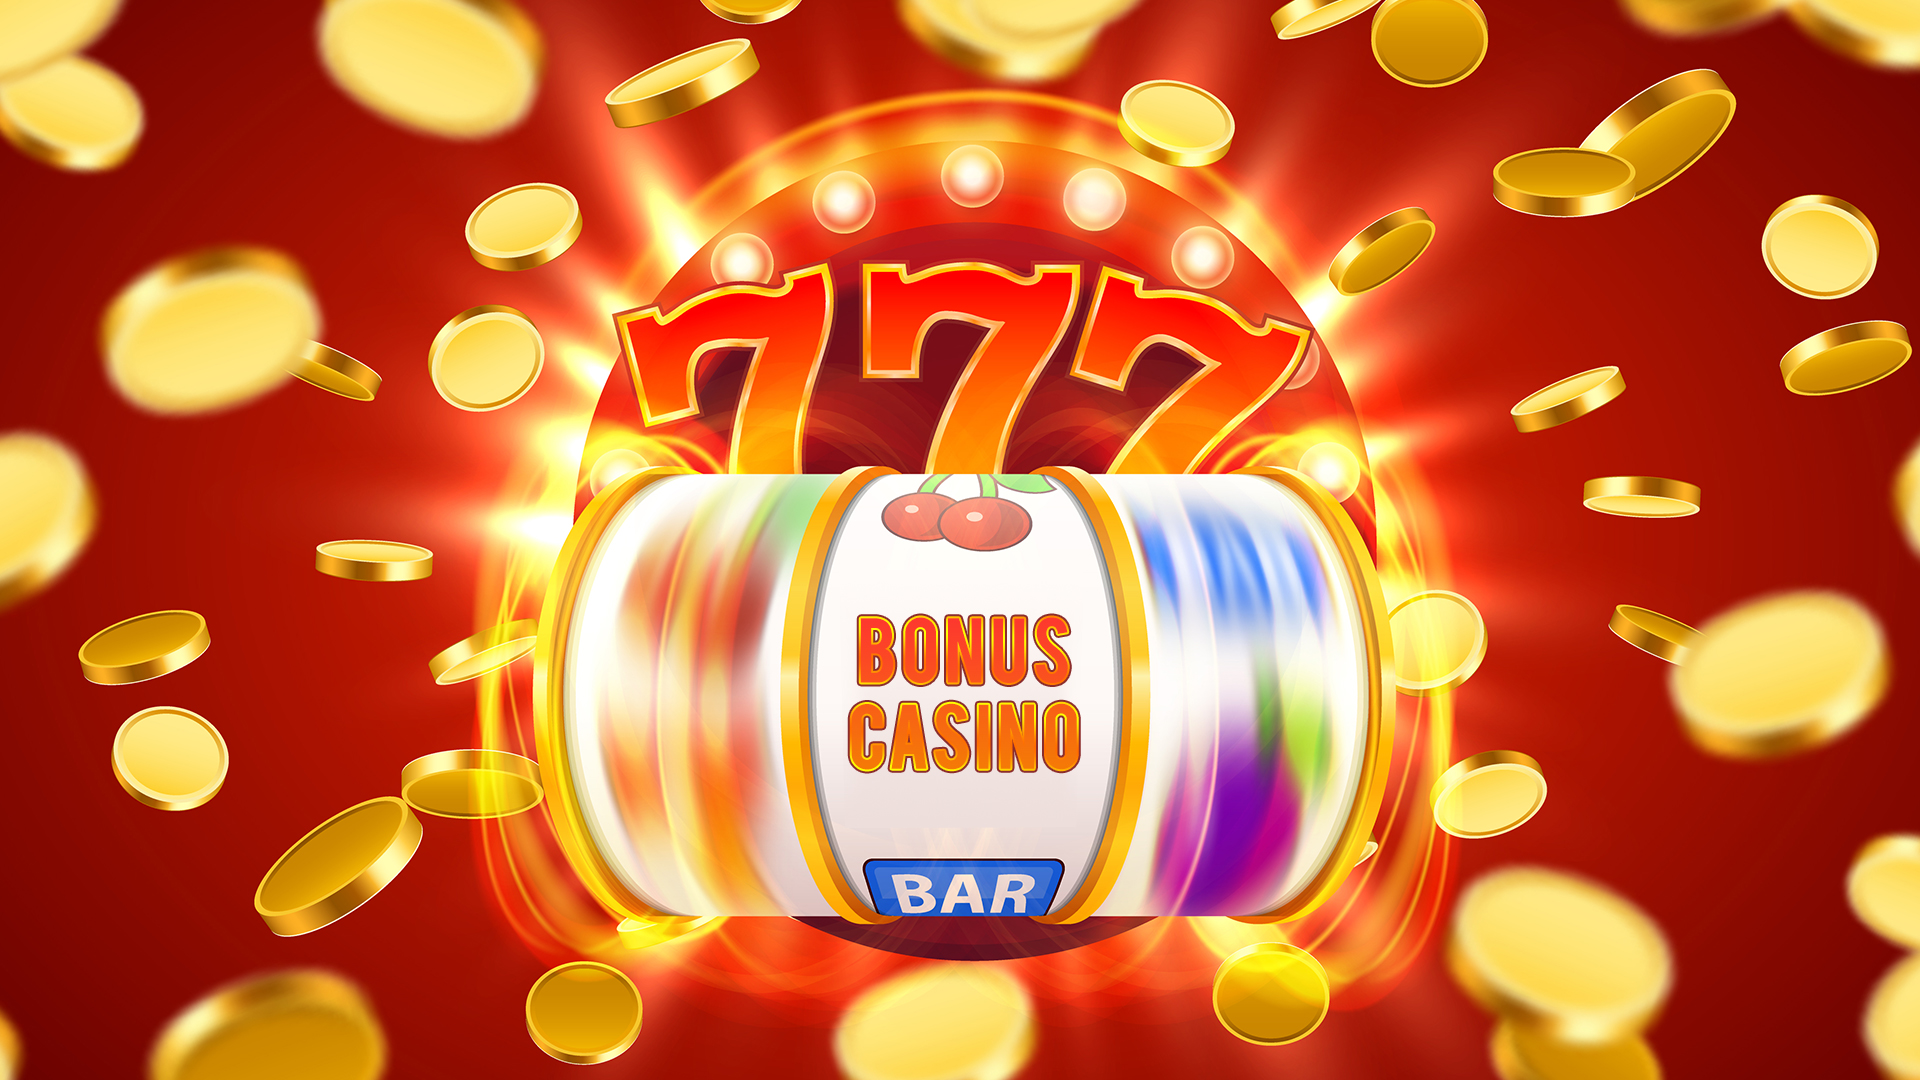 10 steps to finding the perfect casino bonus in an online casino